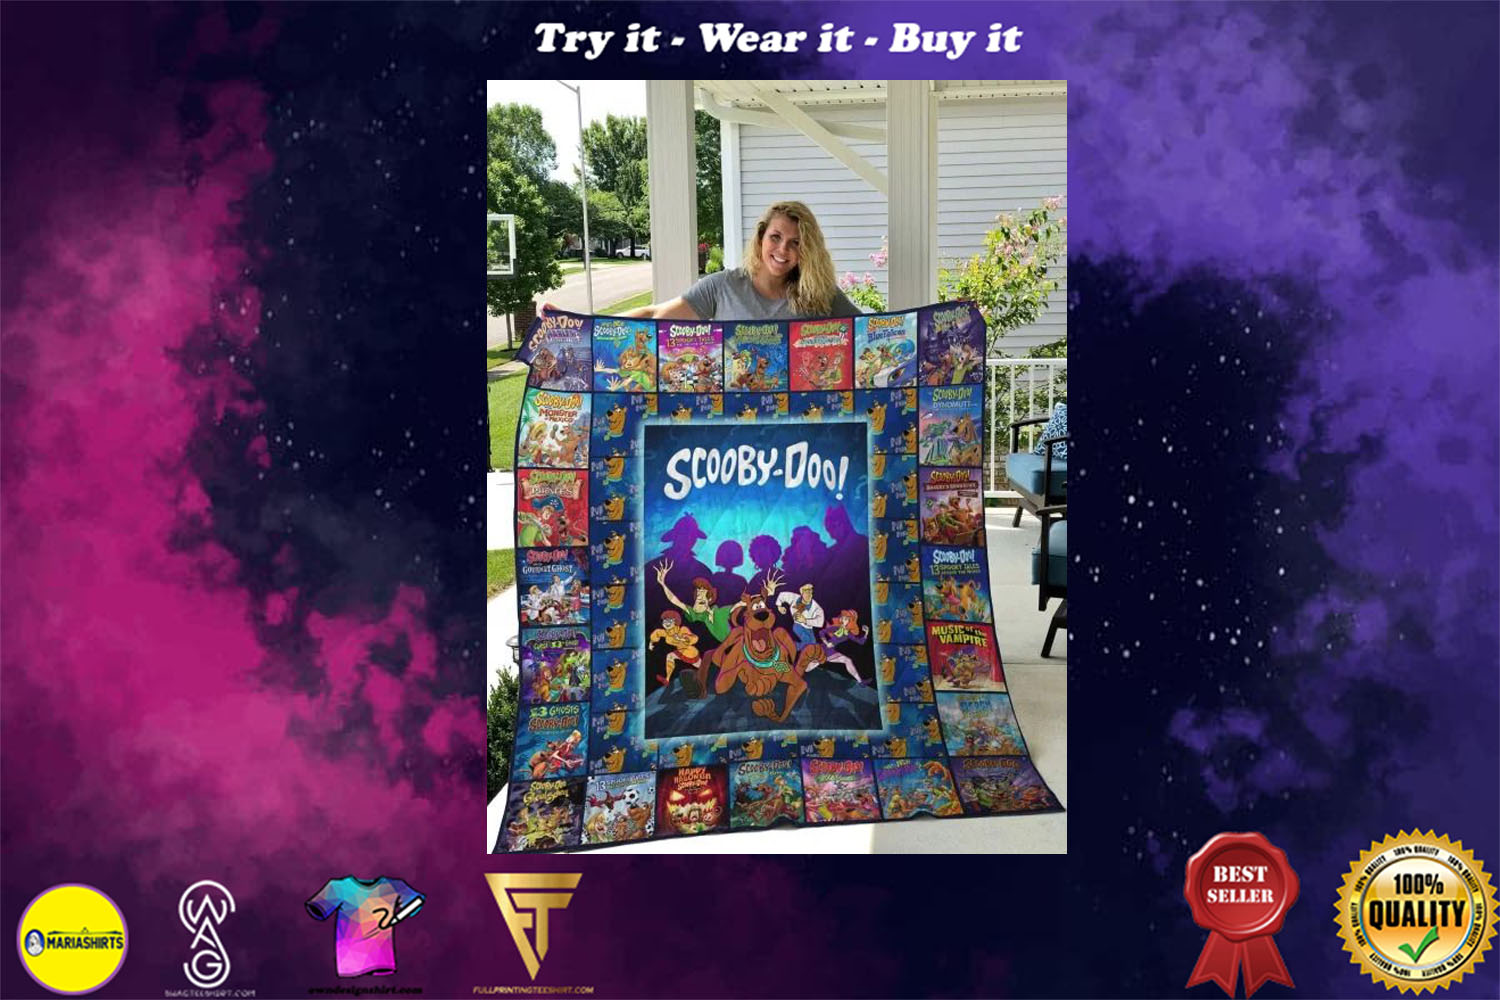 scooby-doo movie full printing quilt - Copy